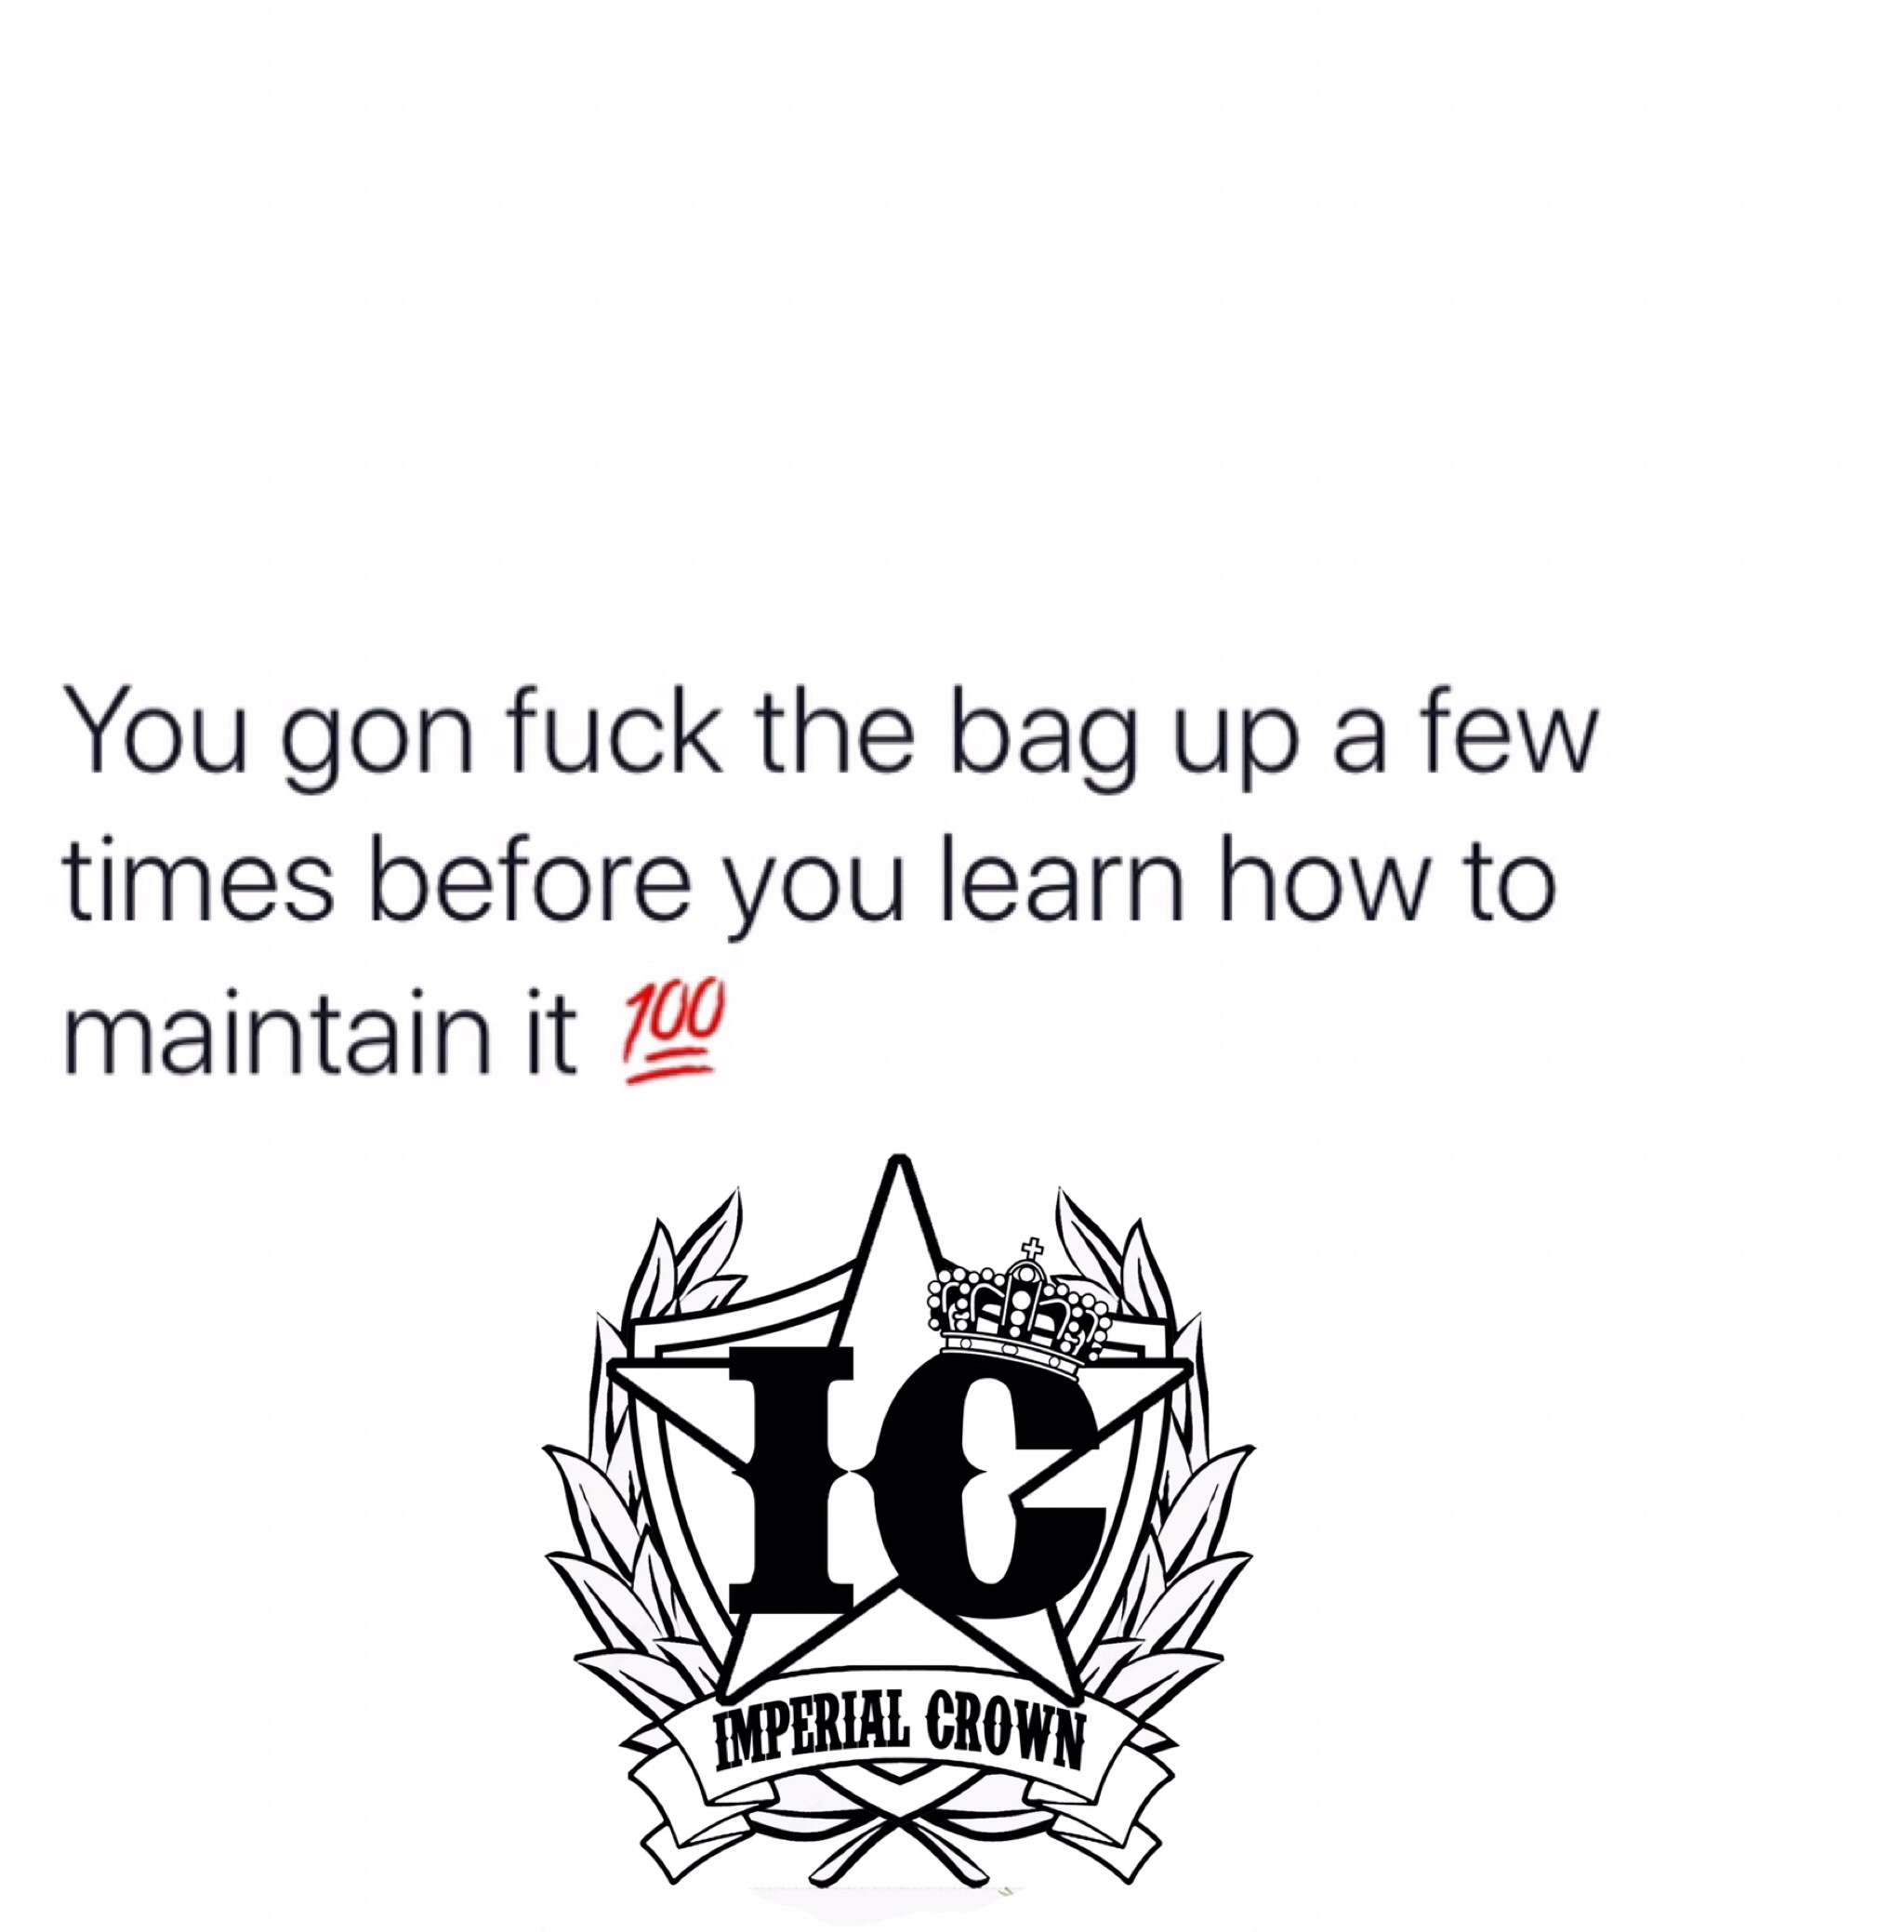 You gon fuck the bag up a few times before you learn how to….